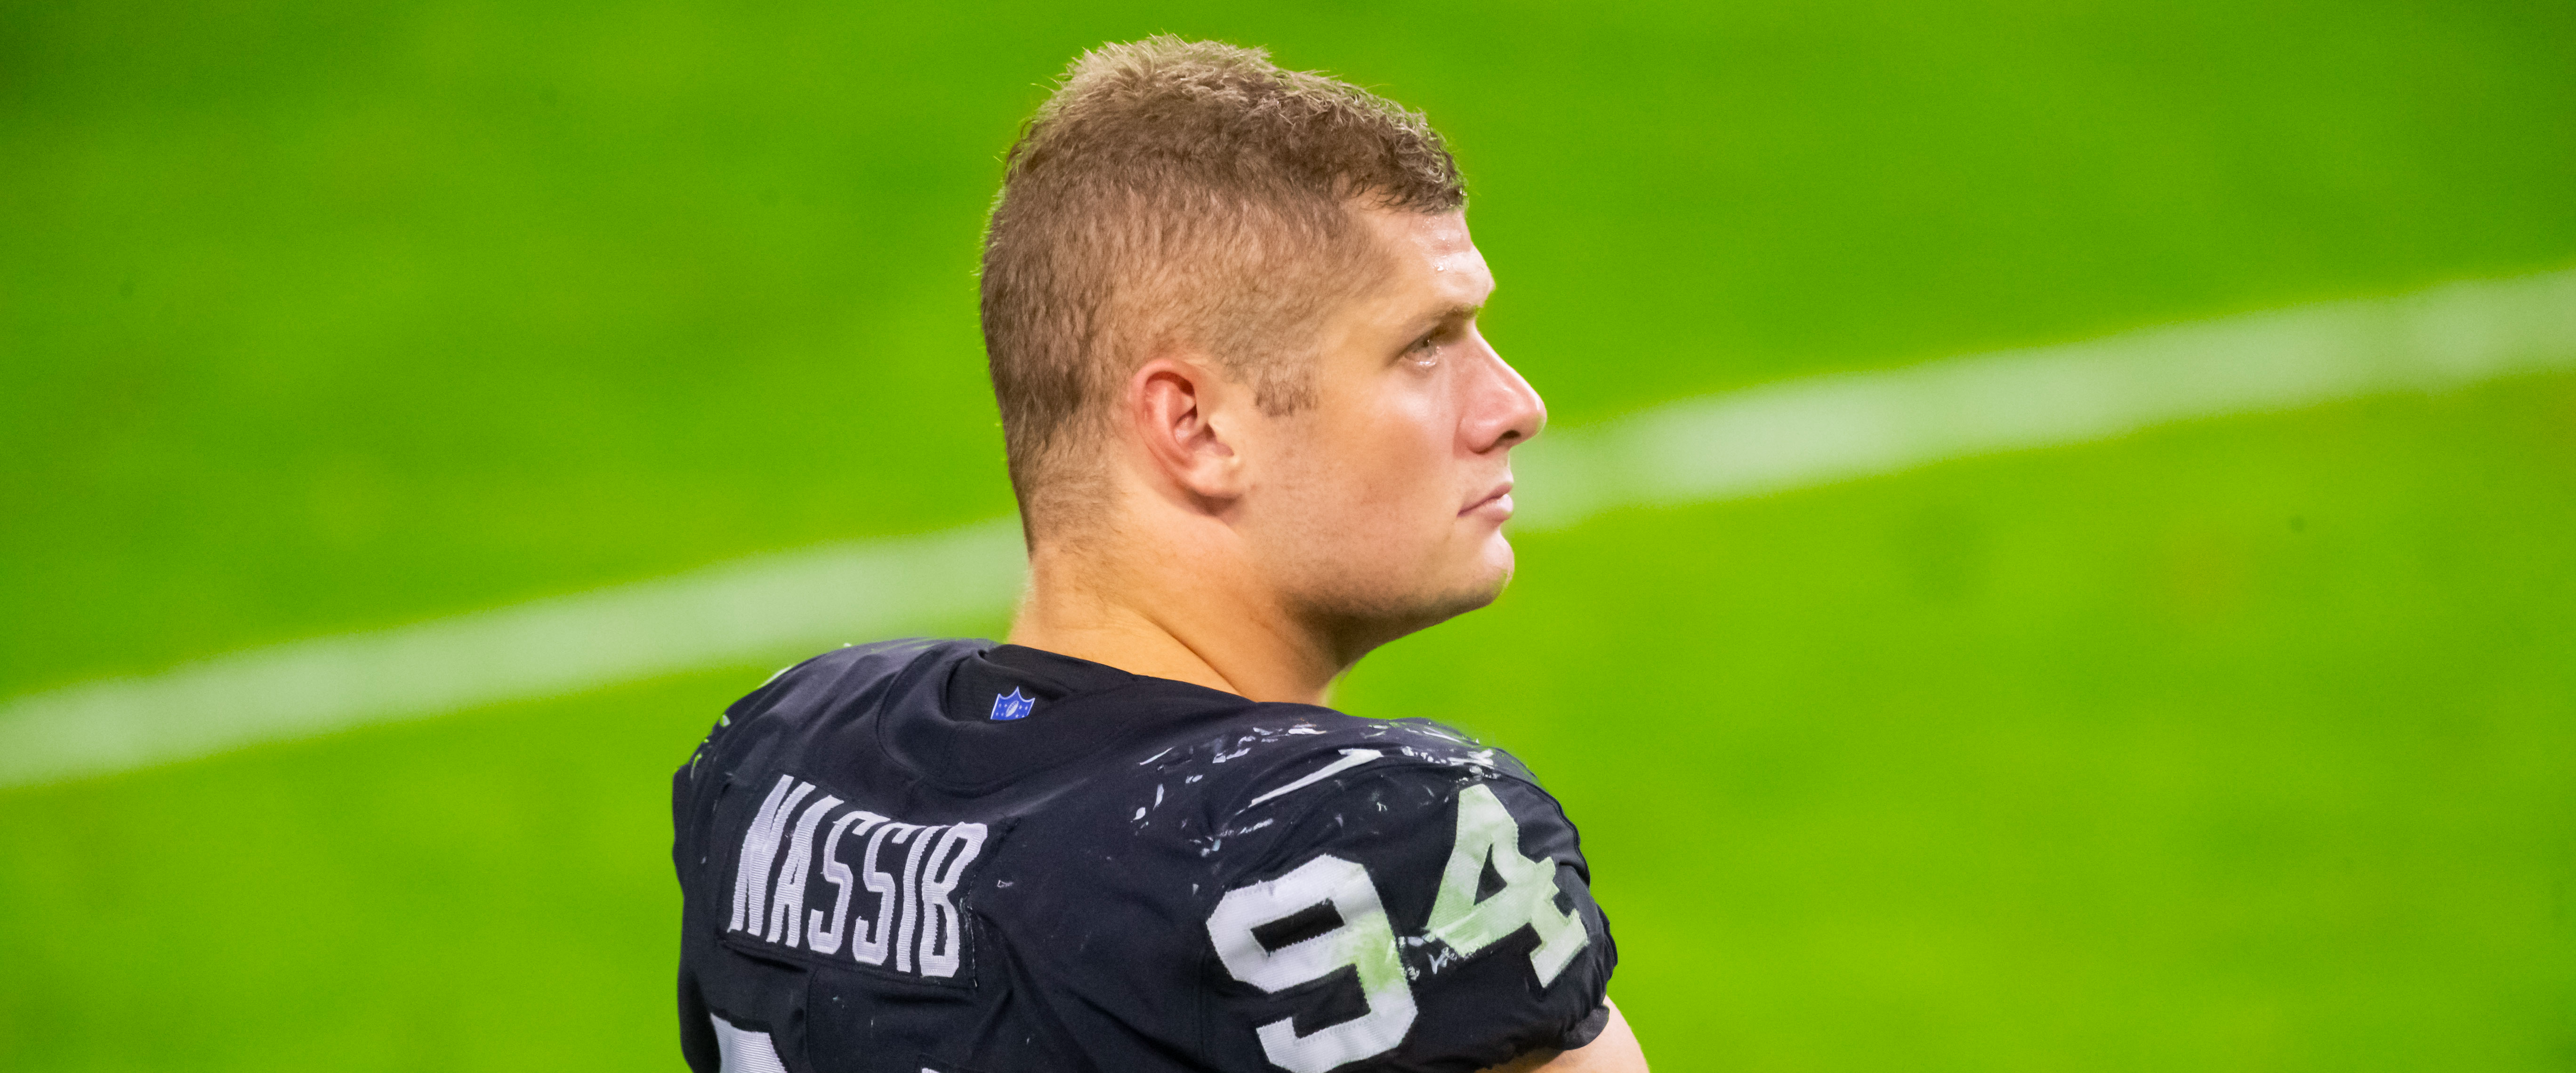 Carl Nassib becomes the first openly gay player in the NFL